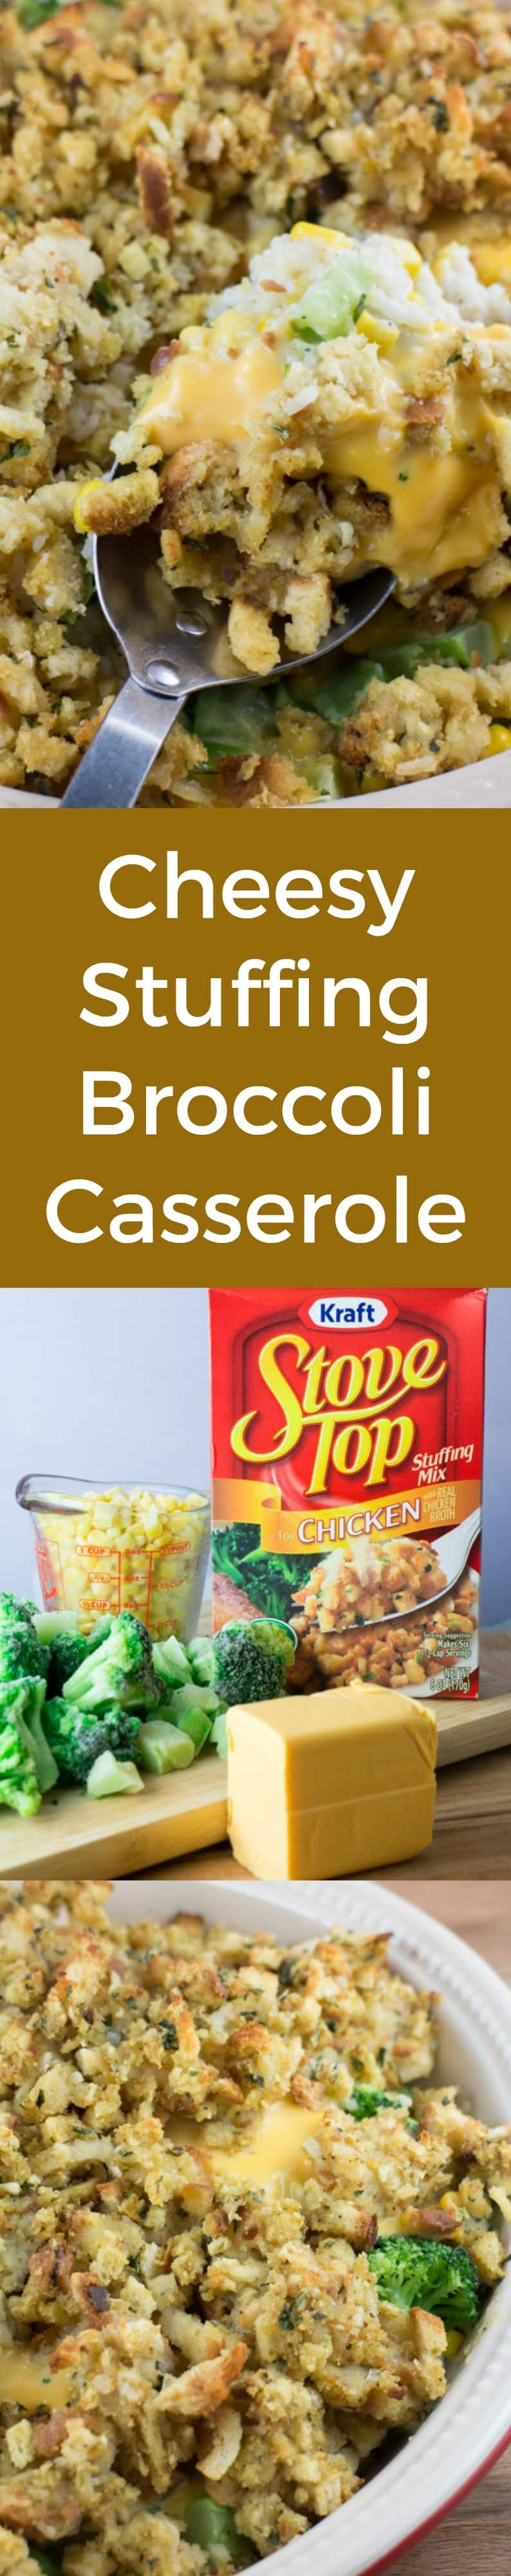 CHEESY Broccoli Stuffing Casserole recipe made with Stove Top! This is a easy dish made with frozen vegetables, cream of chicken soup, rice and Velveeta cheese! It's one of my favorite Thanksgiving side dishes! If you want to make it Vegetarian use cream of broccoli soup instead!